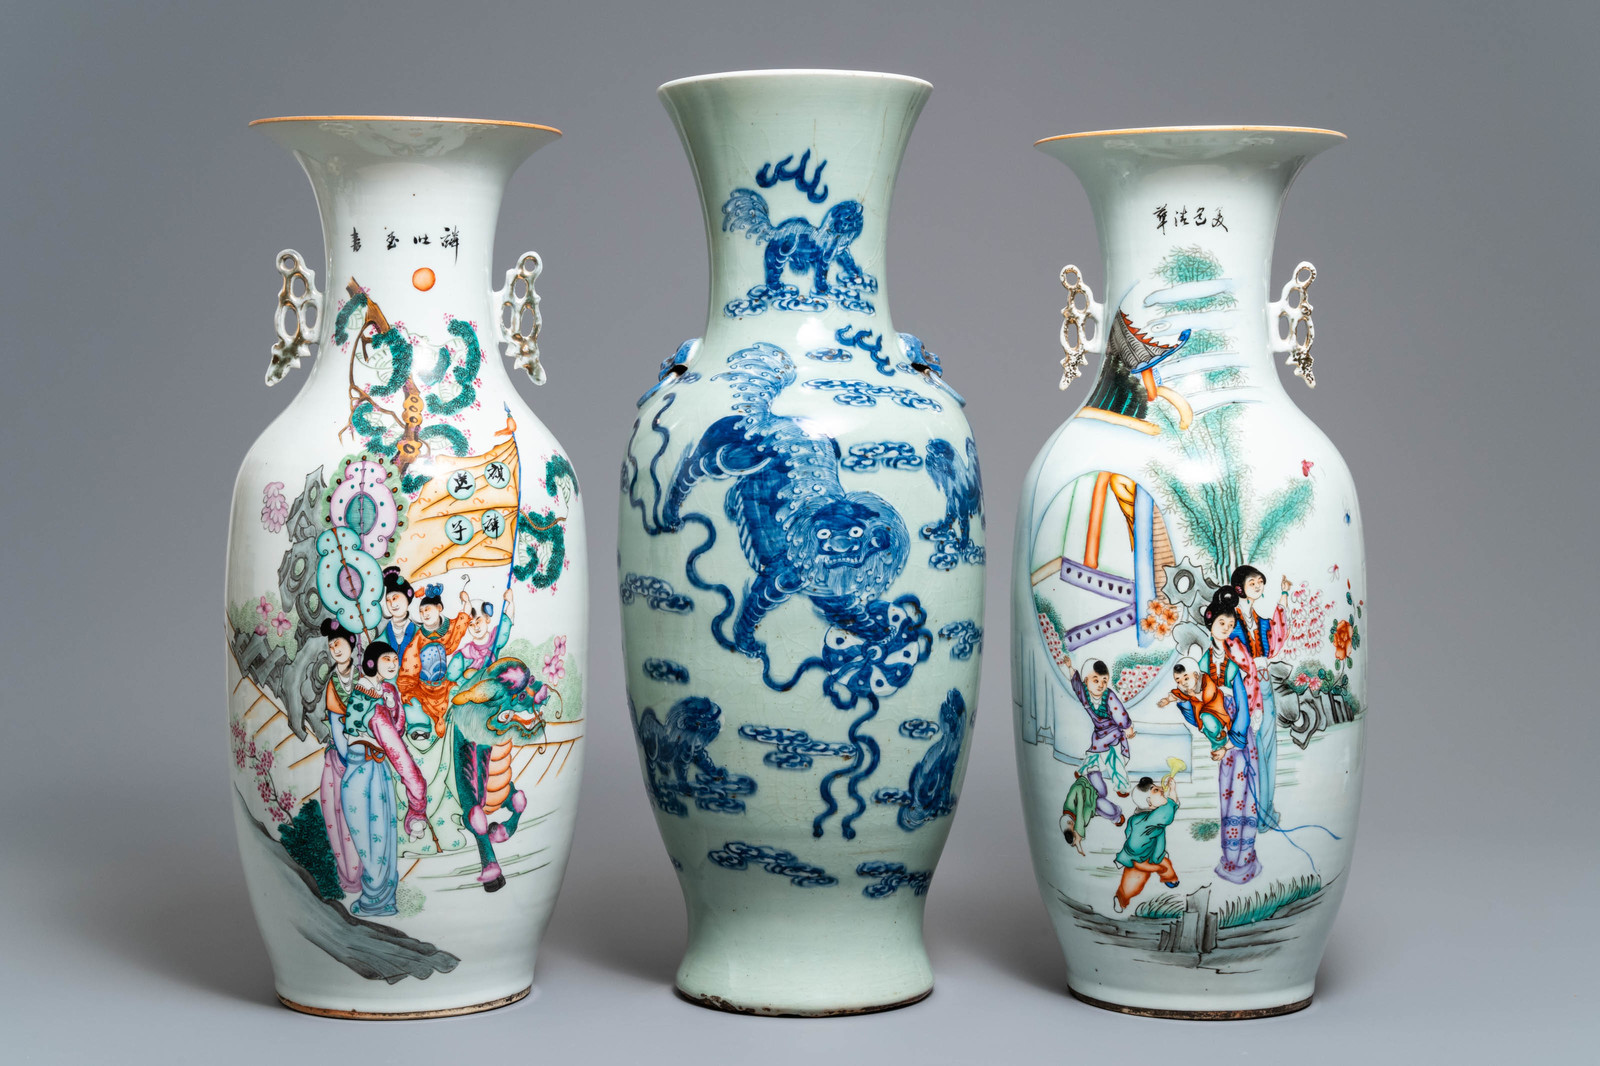 Lot 48 - Two Chinese famille rose vases and a blue and white celadon vase, 19/20th C.